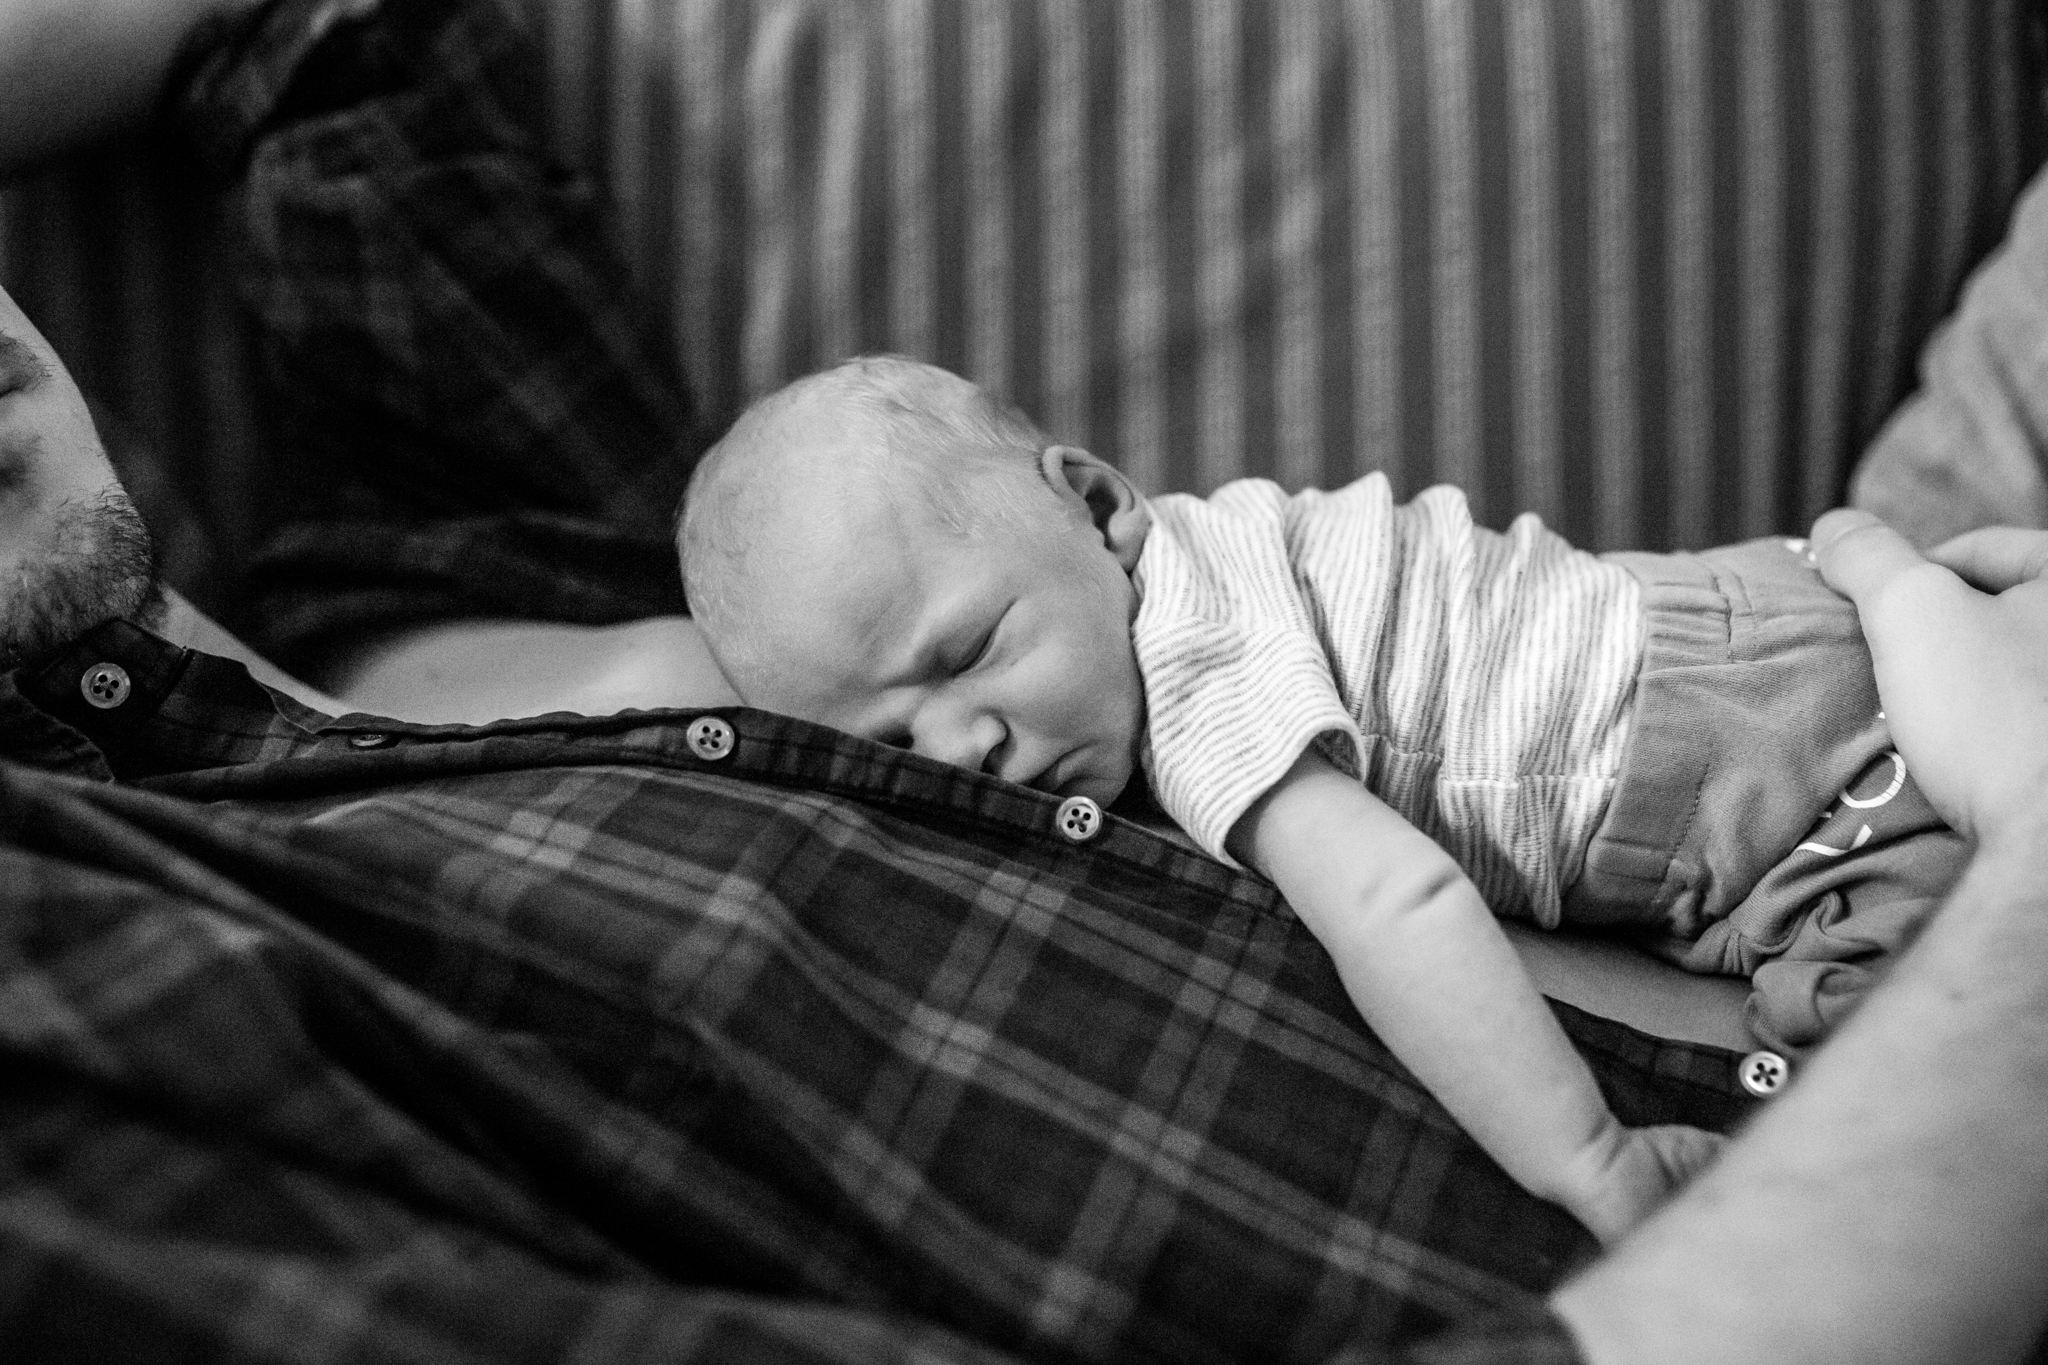 Lawren Rose Photography takes a photograph during a Day In The Life session in farmers branch texas of a 3 day old son laying on his fathers chest